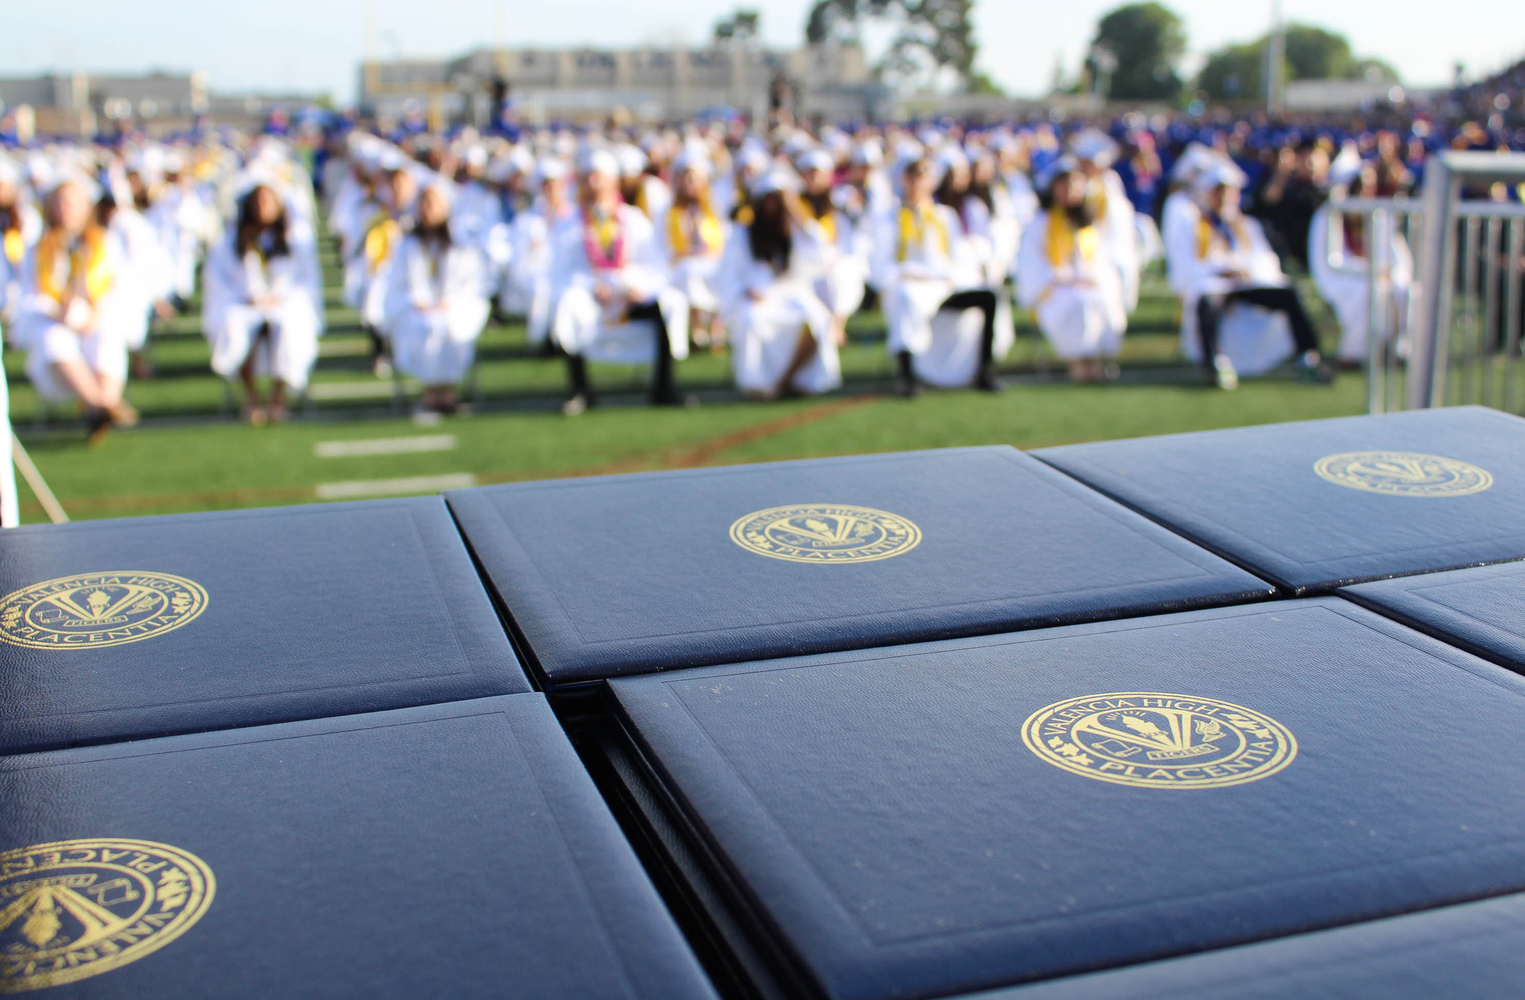 Valencia High School diplomas at graduation ceremony.